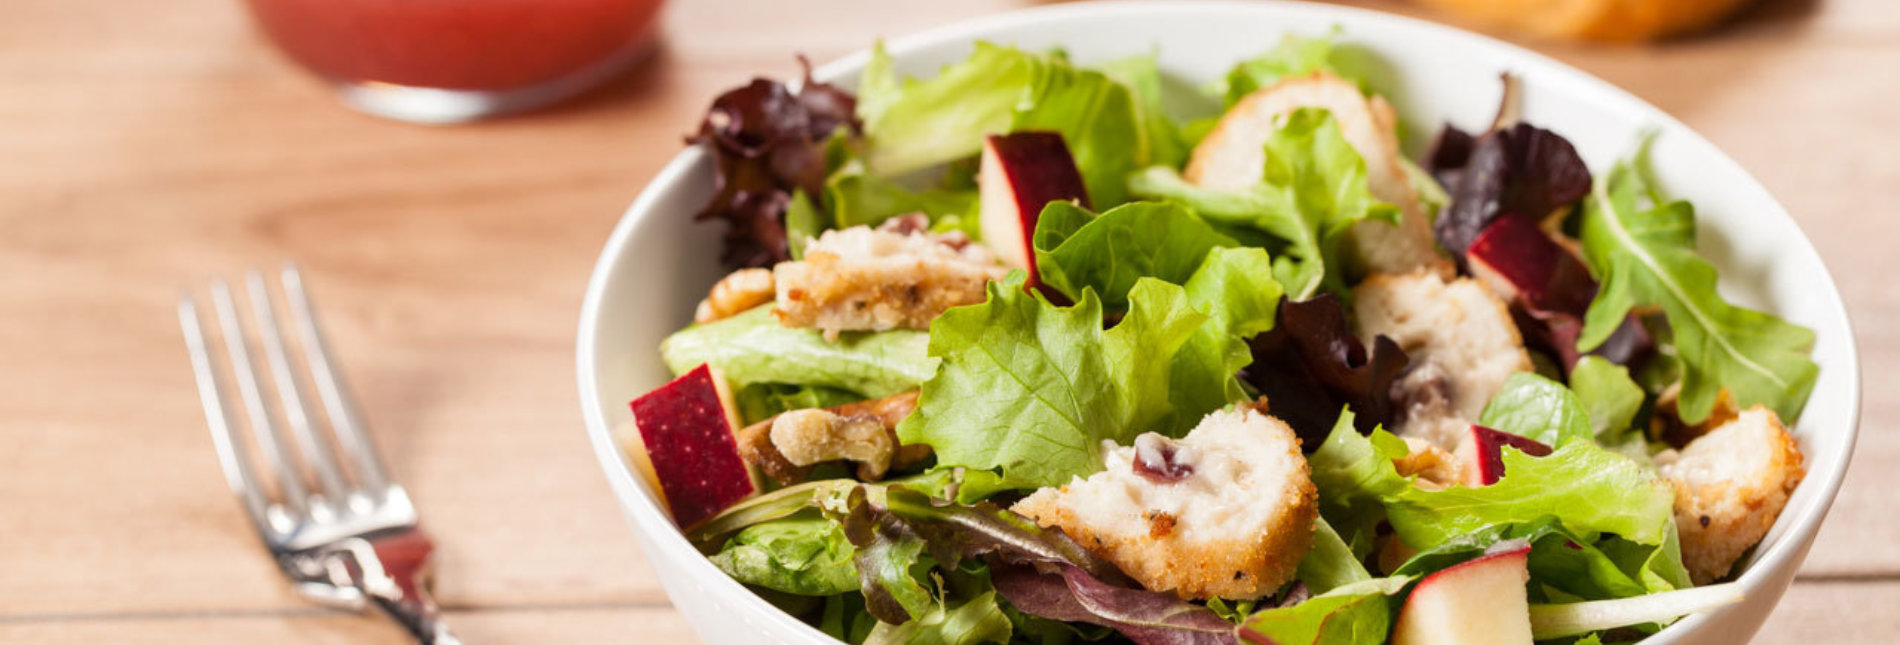 Sandras chicken brie and apple salad recipe